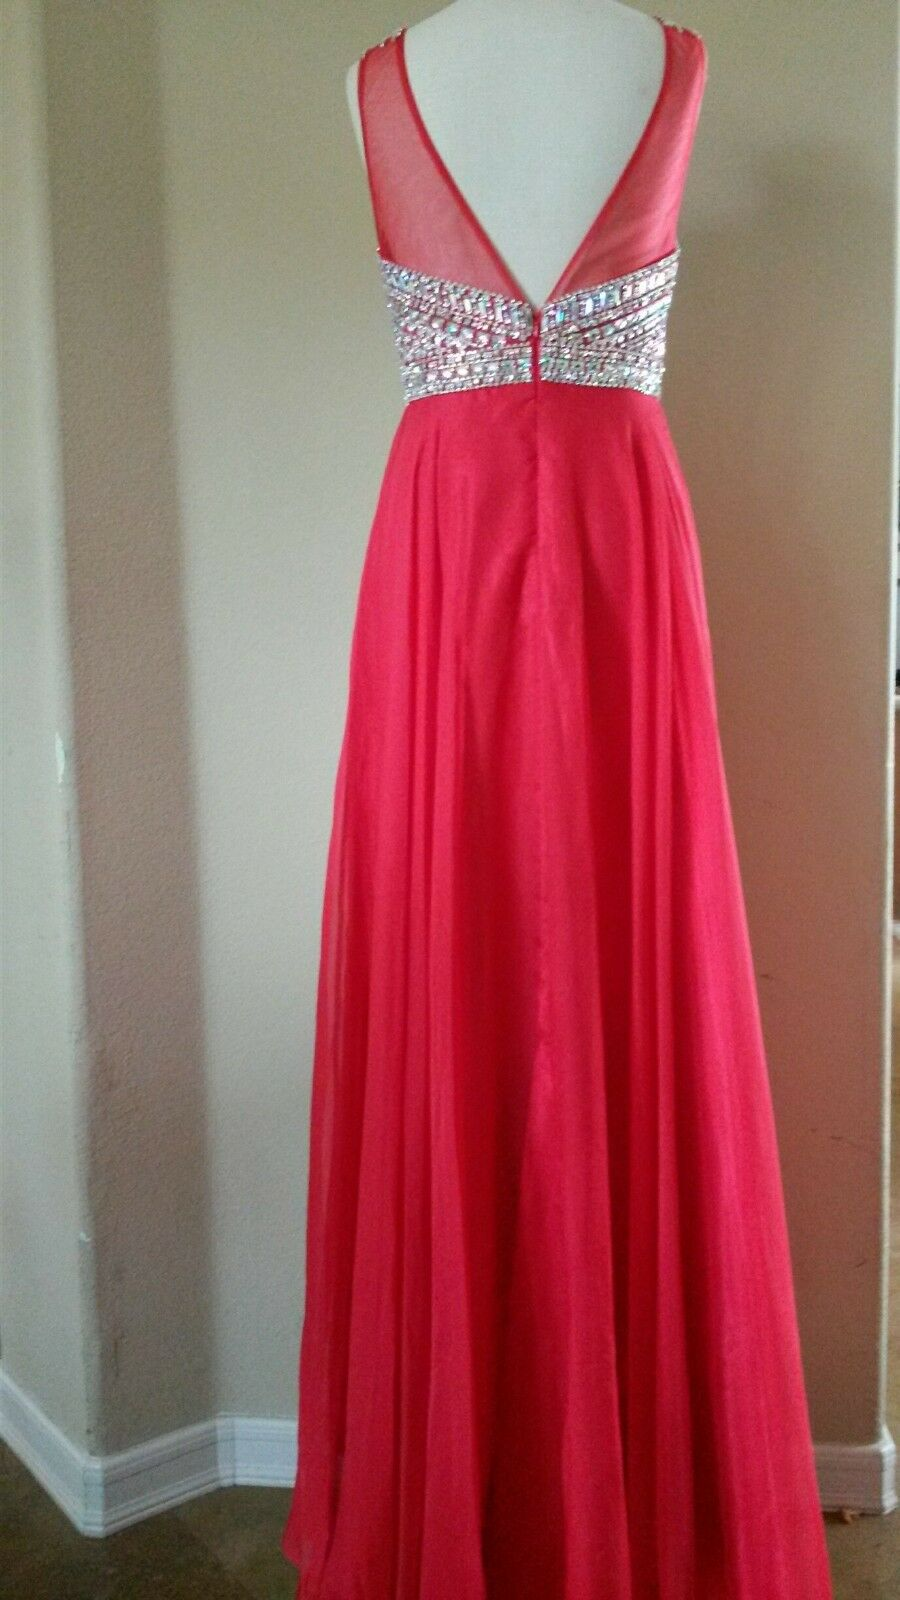 Royal Queen RQ7185 RQ7185 RQ7185 Red Size 8-FULL LENGTH-Prom-Military ball-Homecoming 5af2a6